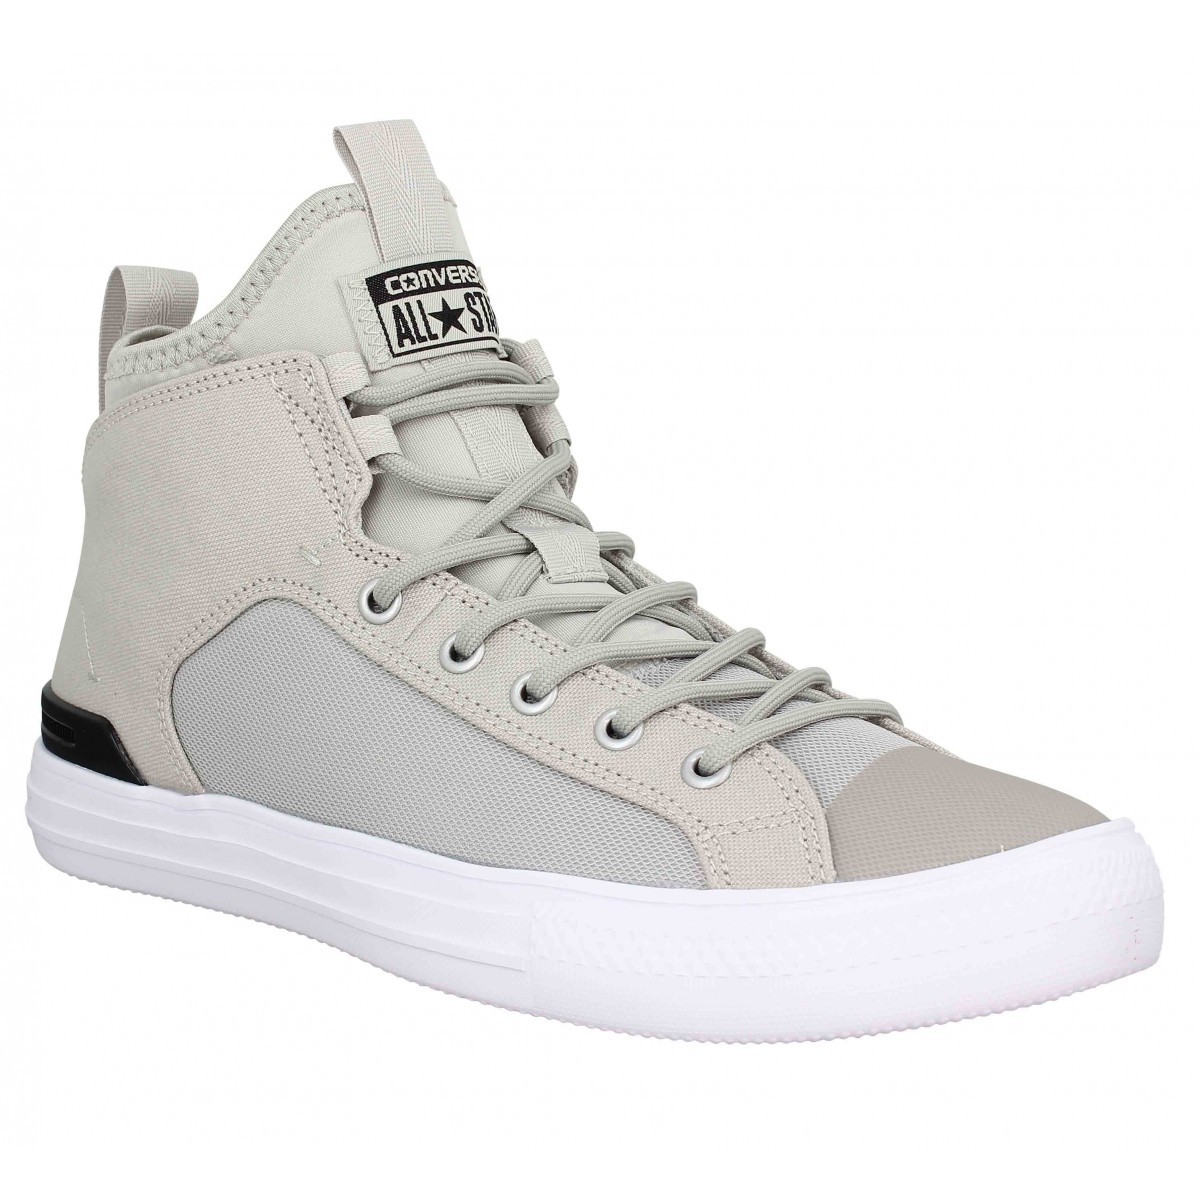 Baskets CONVERSE Chuck Taylor All Star Ultra Mid toile Homme Gris